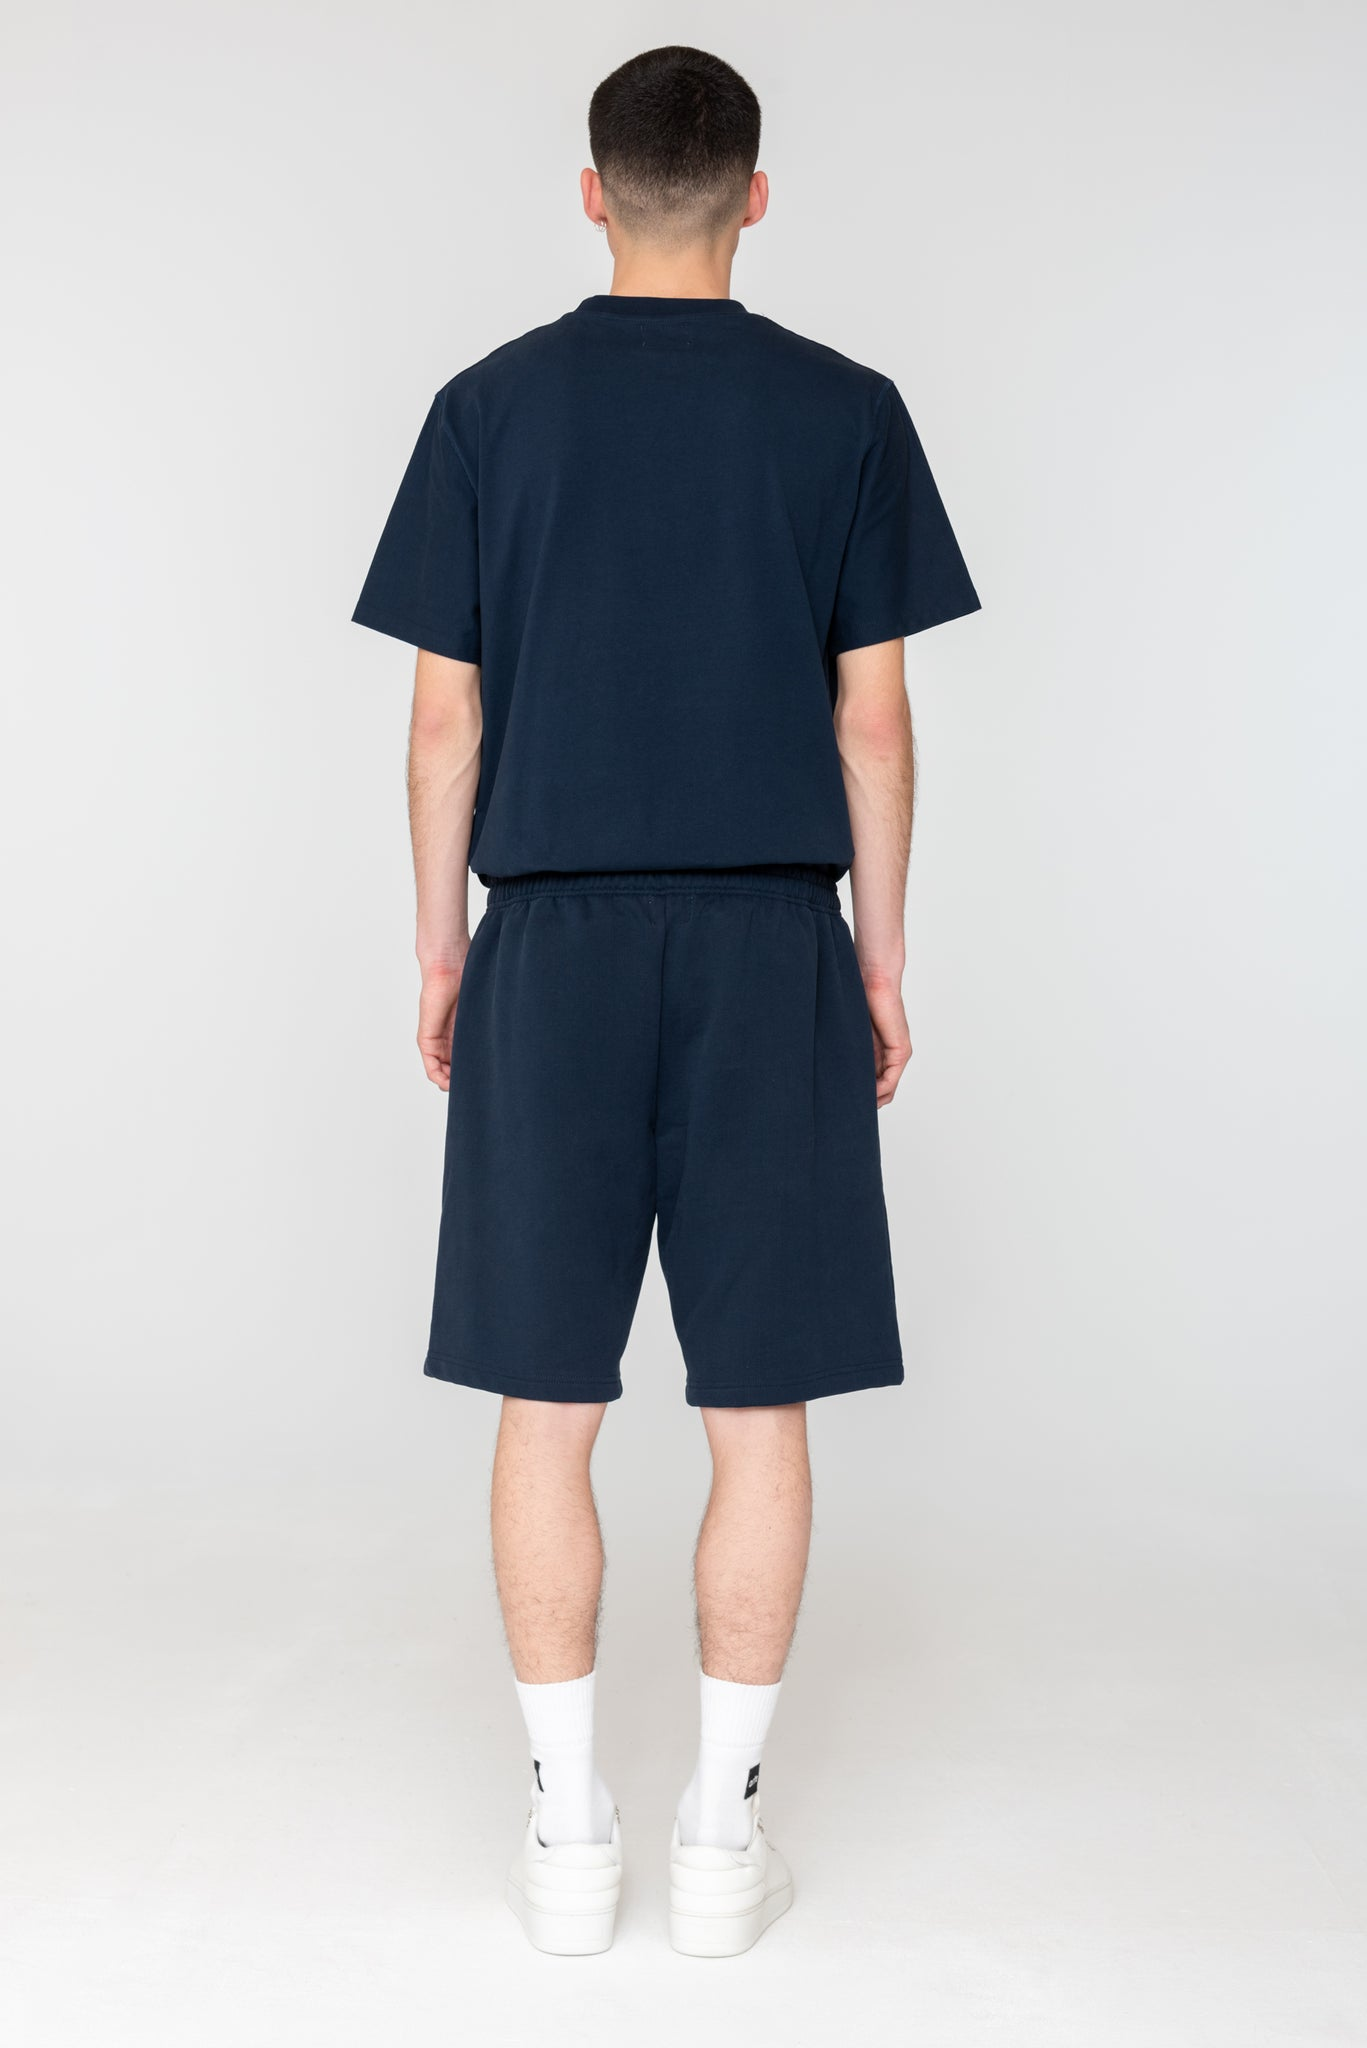 Seppe SHORTS Navy - Arte Antwerp